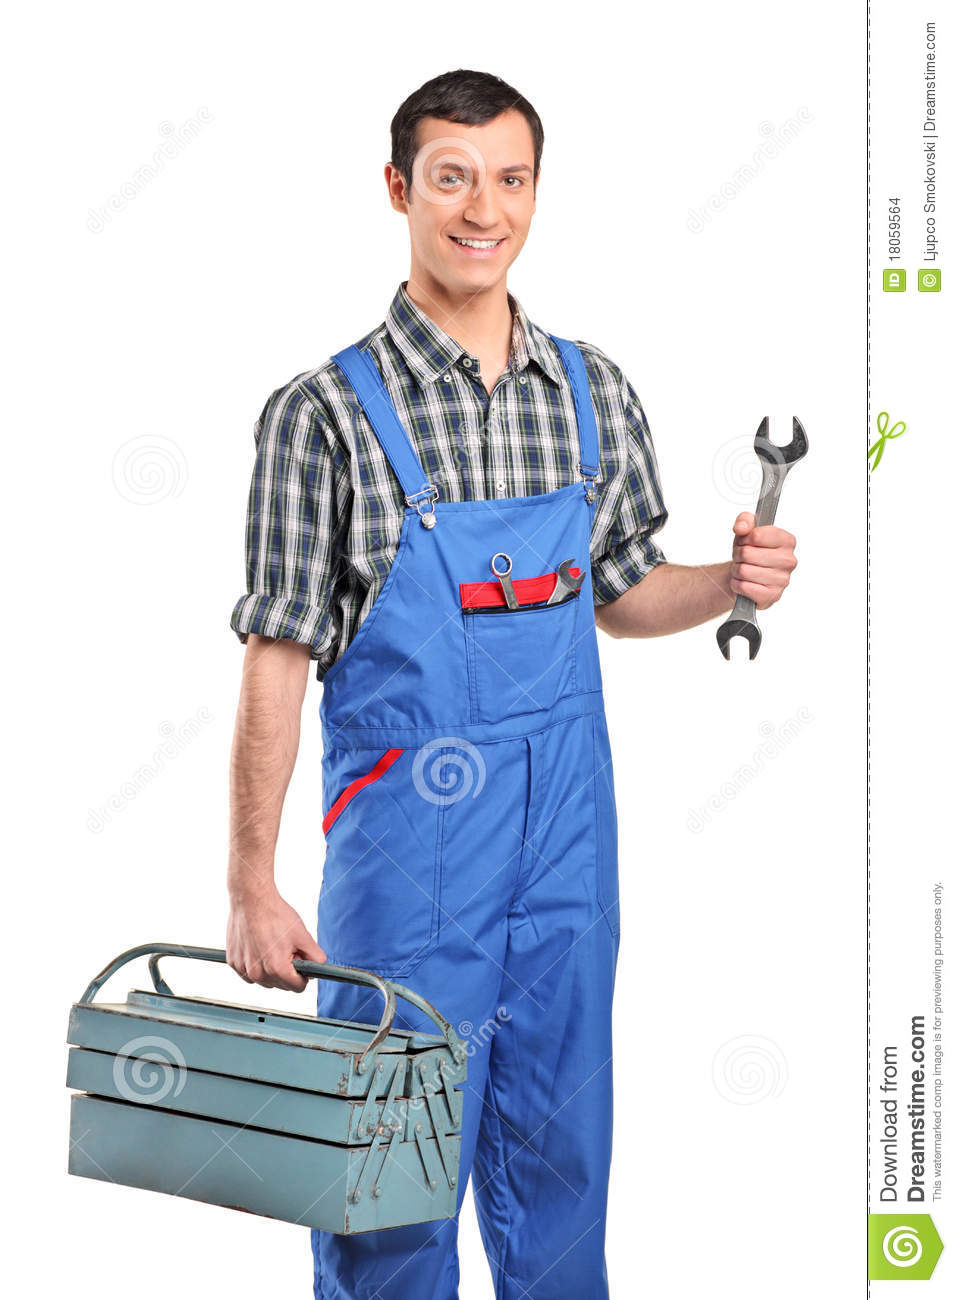 A Repairman In Verall Holding A Toolbox Stock Photo - Image of mechanical, garment: 18059564